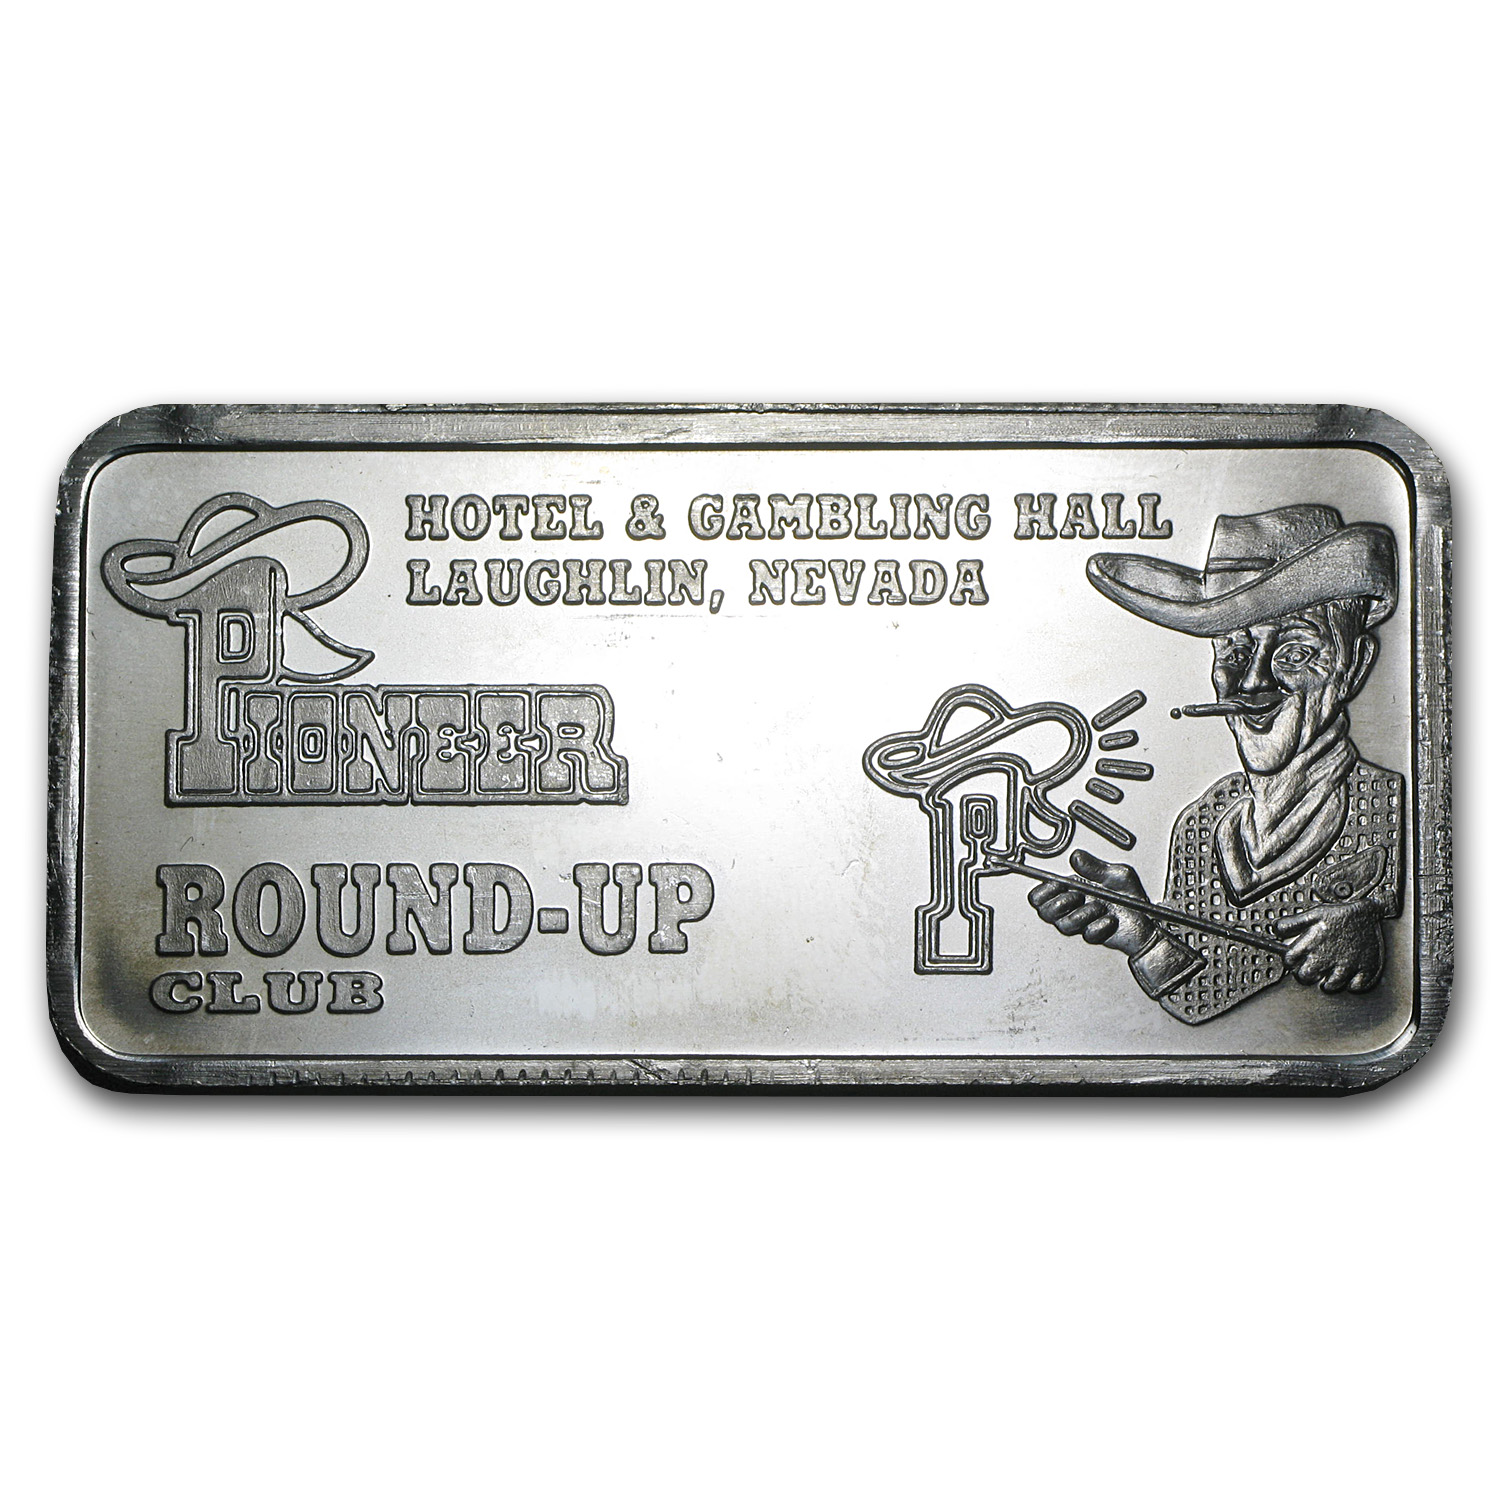 5 oz Silver Bar - APM (Round-Up Club)